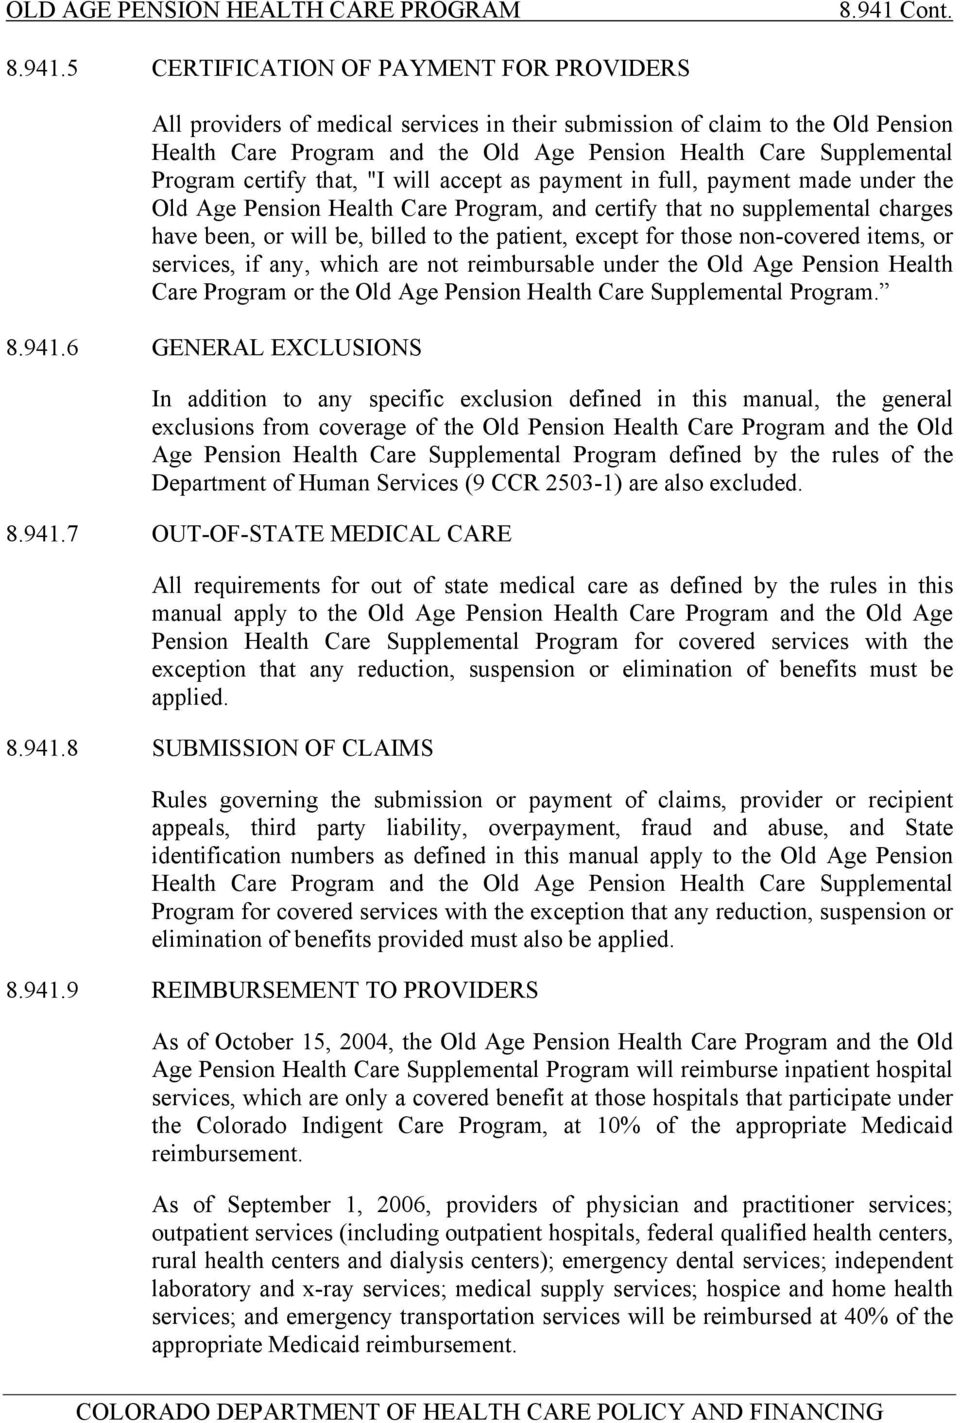 5 CERTIFICATION OF PAYMENT FOR PROVIDERS All providers of medical services in their submission of claim to the Old Pension Health Care Program and the Old Age Pension Health Care Supplemental Program